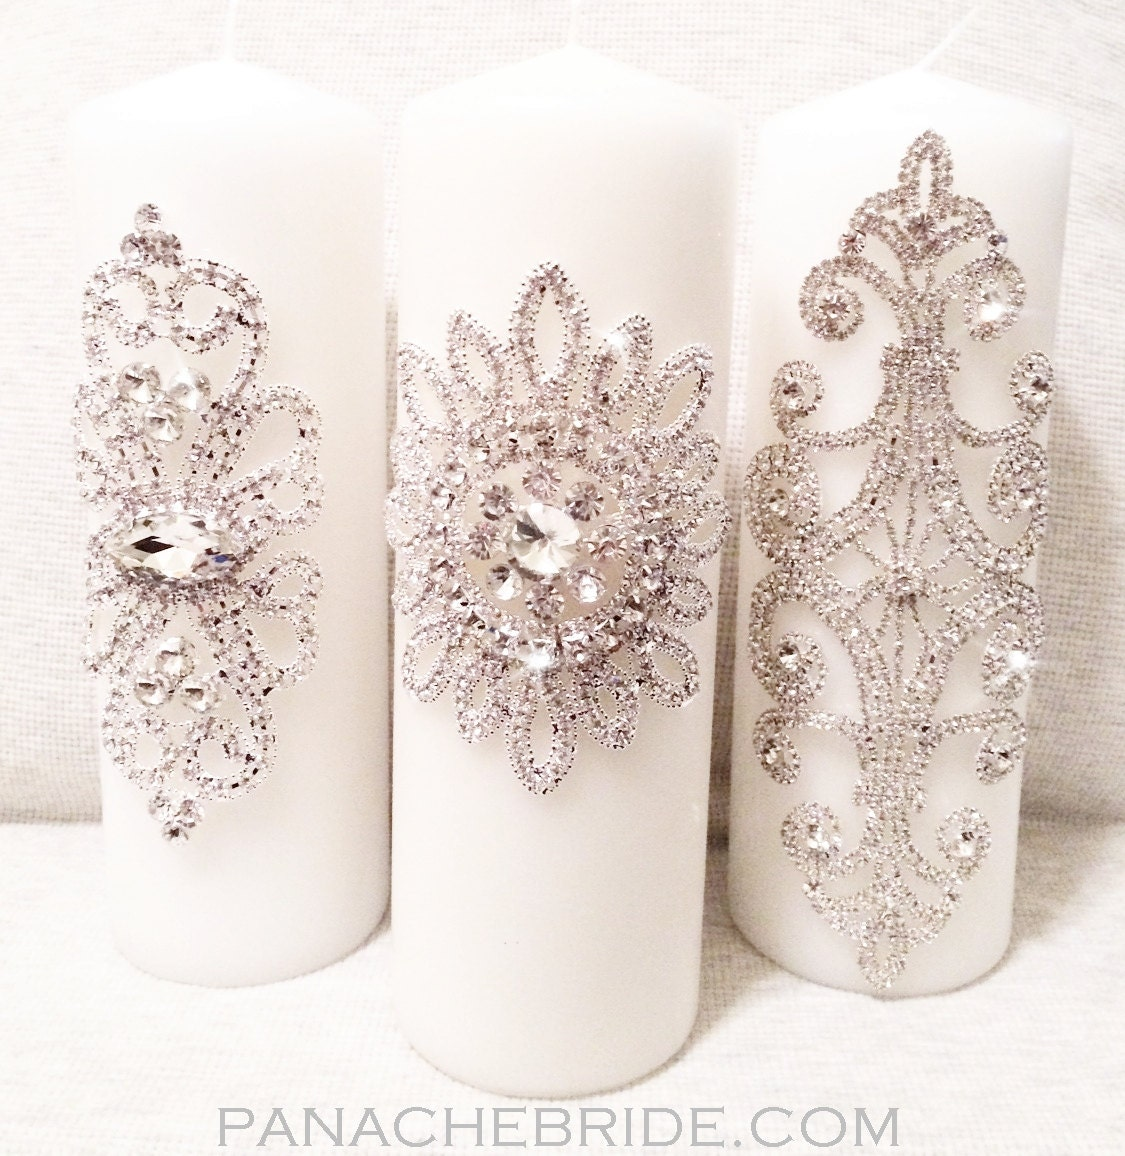 Wedding Candles: Wedding Unity Candles Rhinestone Embellished By Panachebride